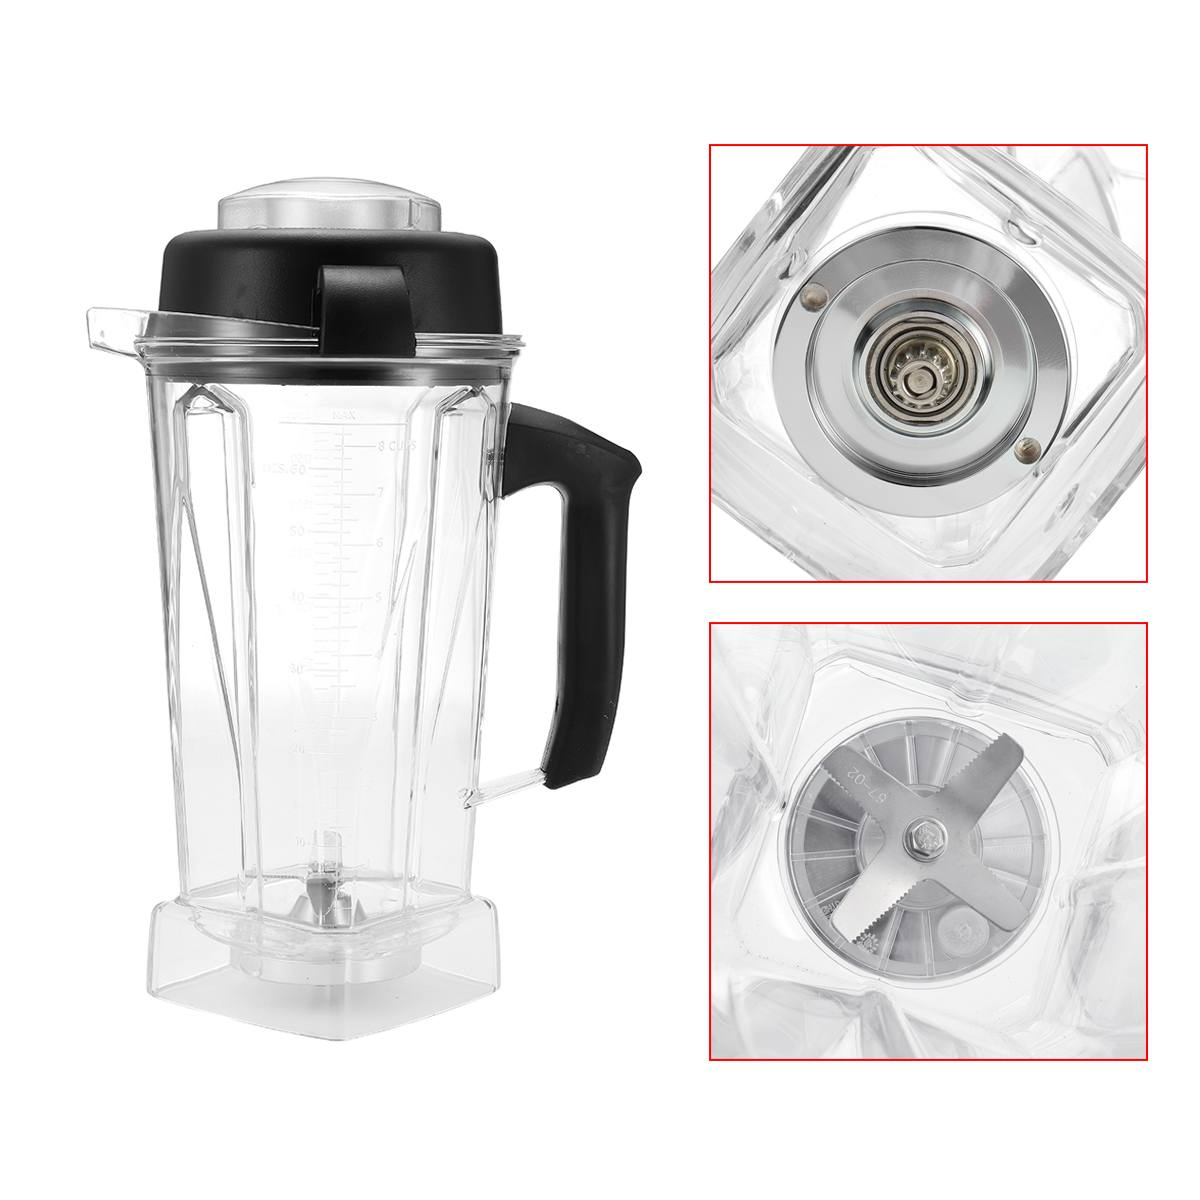 2L Container Jar Jug Pitcher Cup Commercial Blender/ Spare Parts for Vitamix 60oz Home Kitchen Appliance Food Mixer Part Durable home appliance